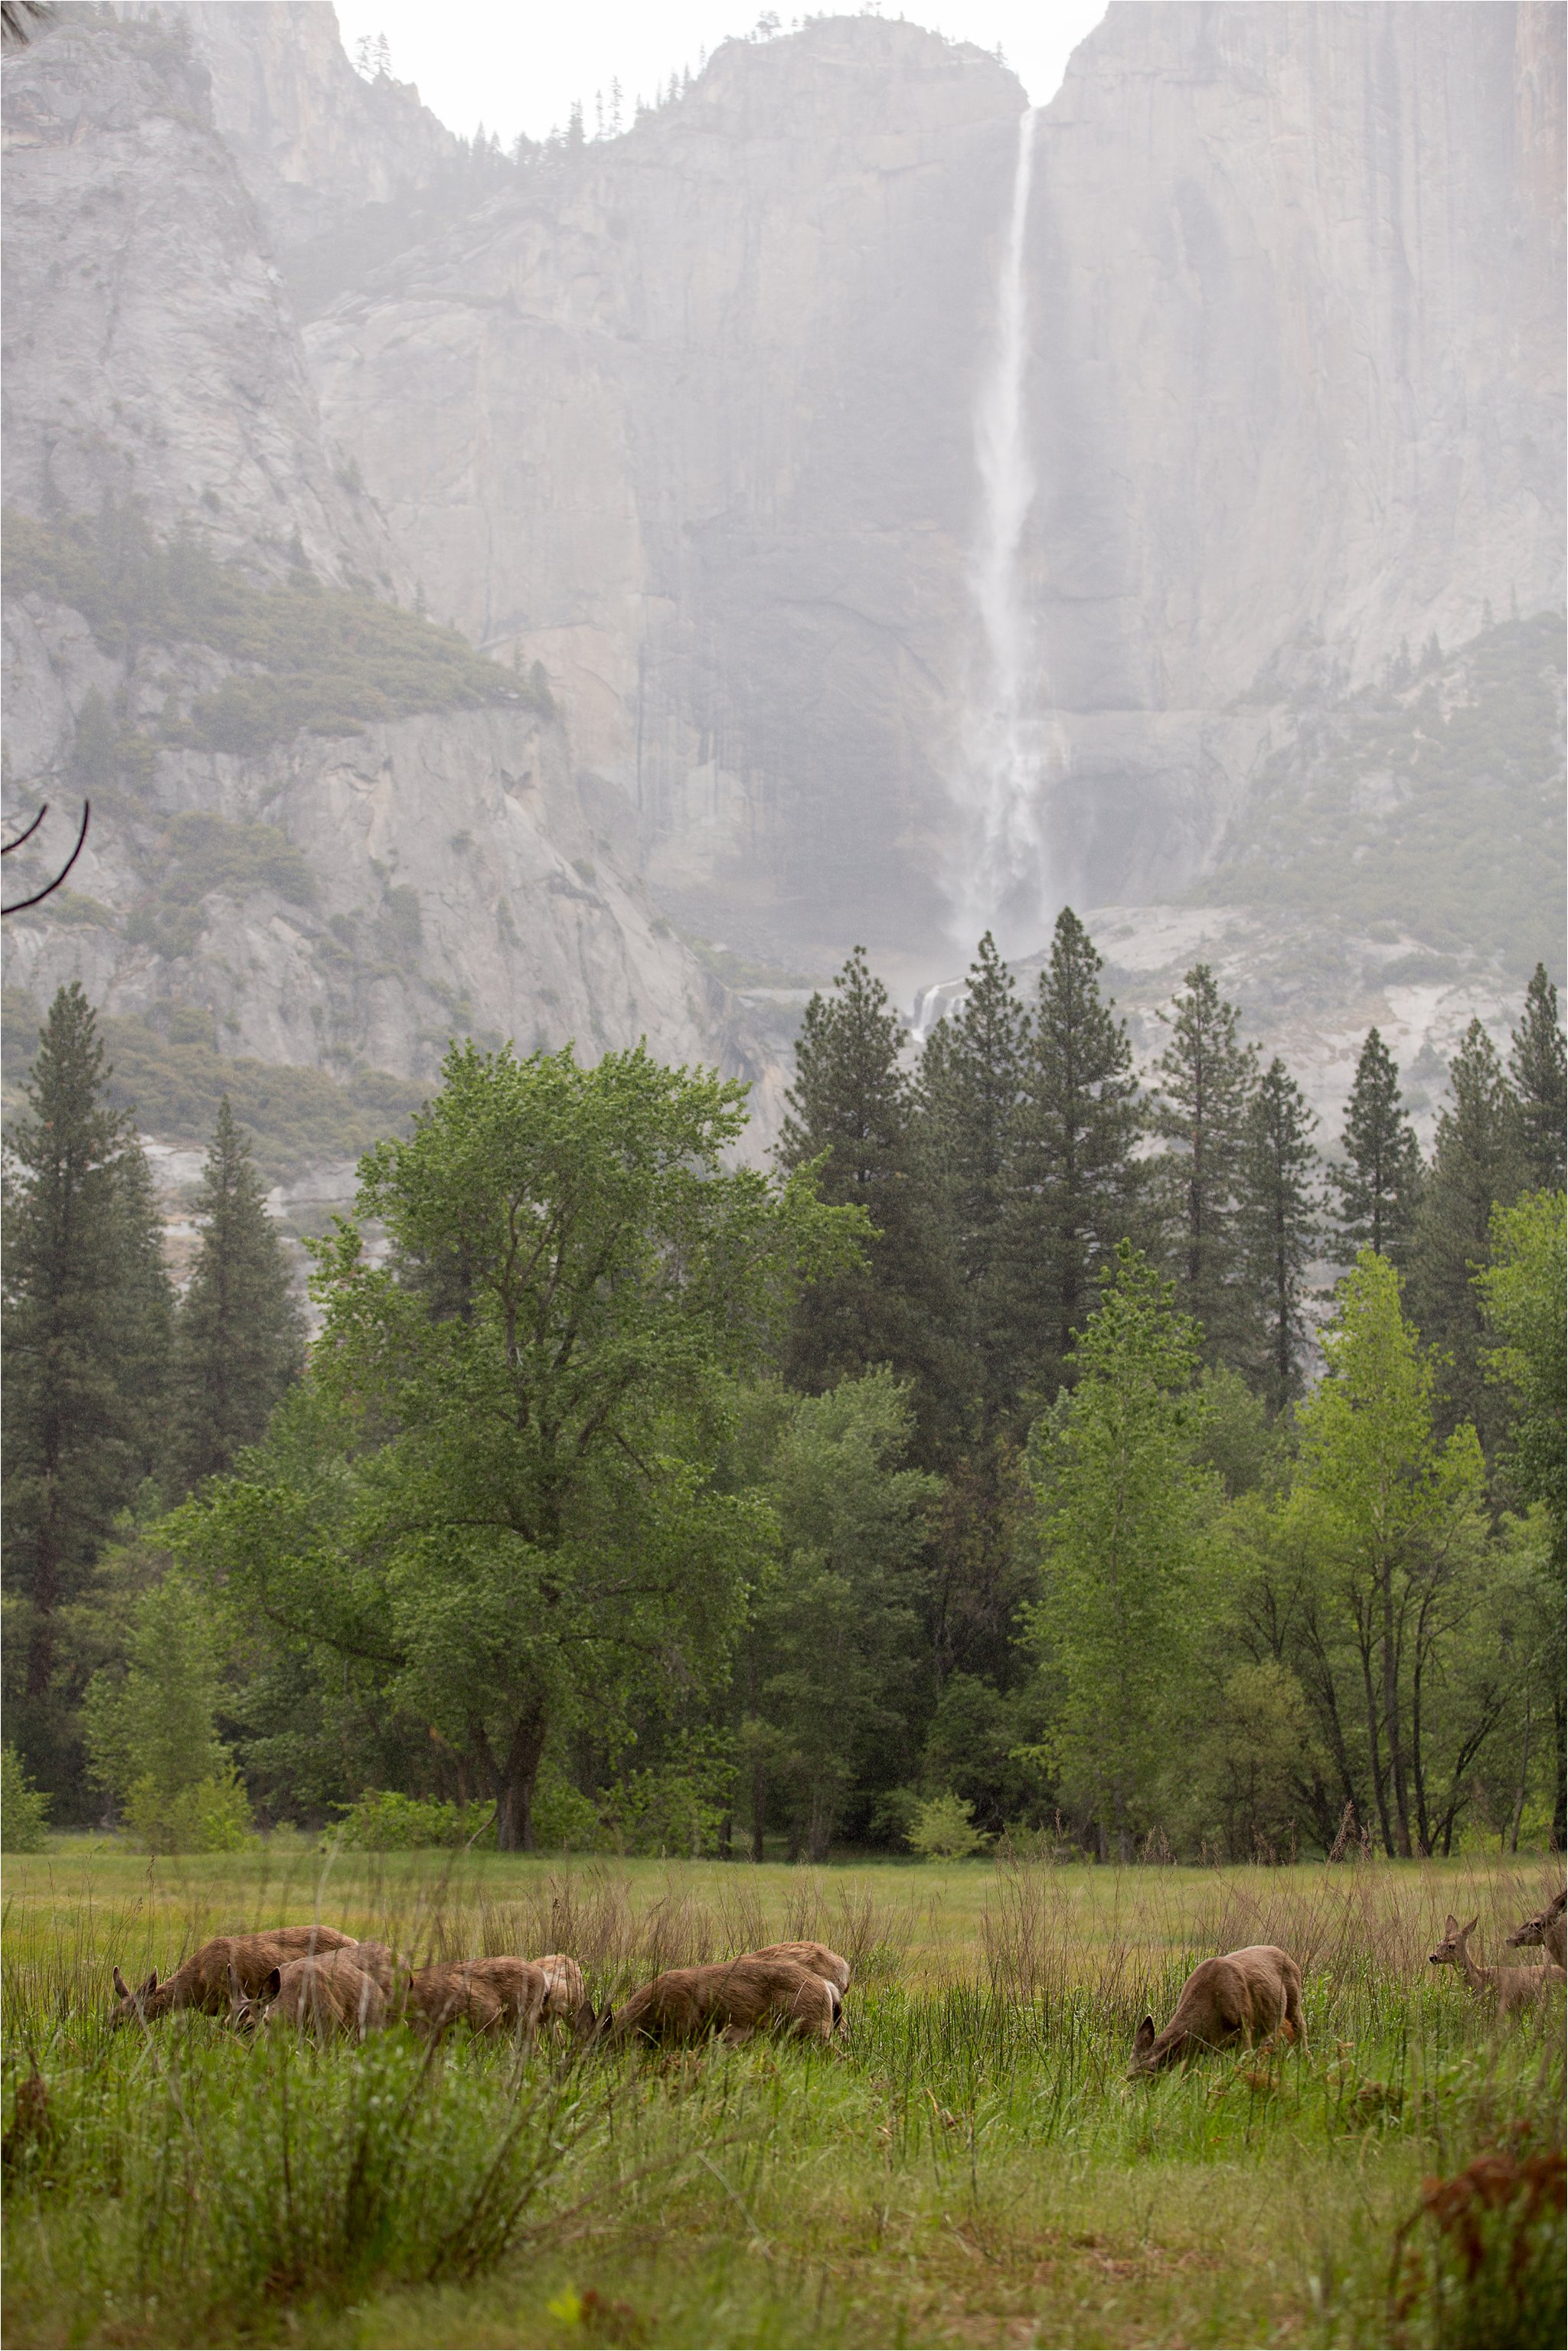 Waterfall and Deer in Yosemite National Park